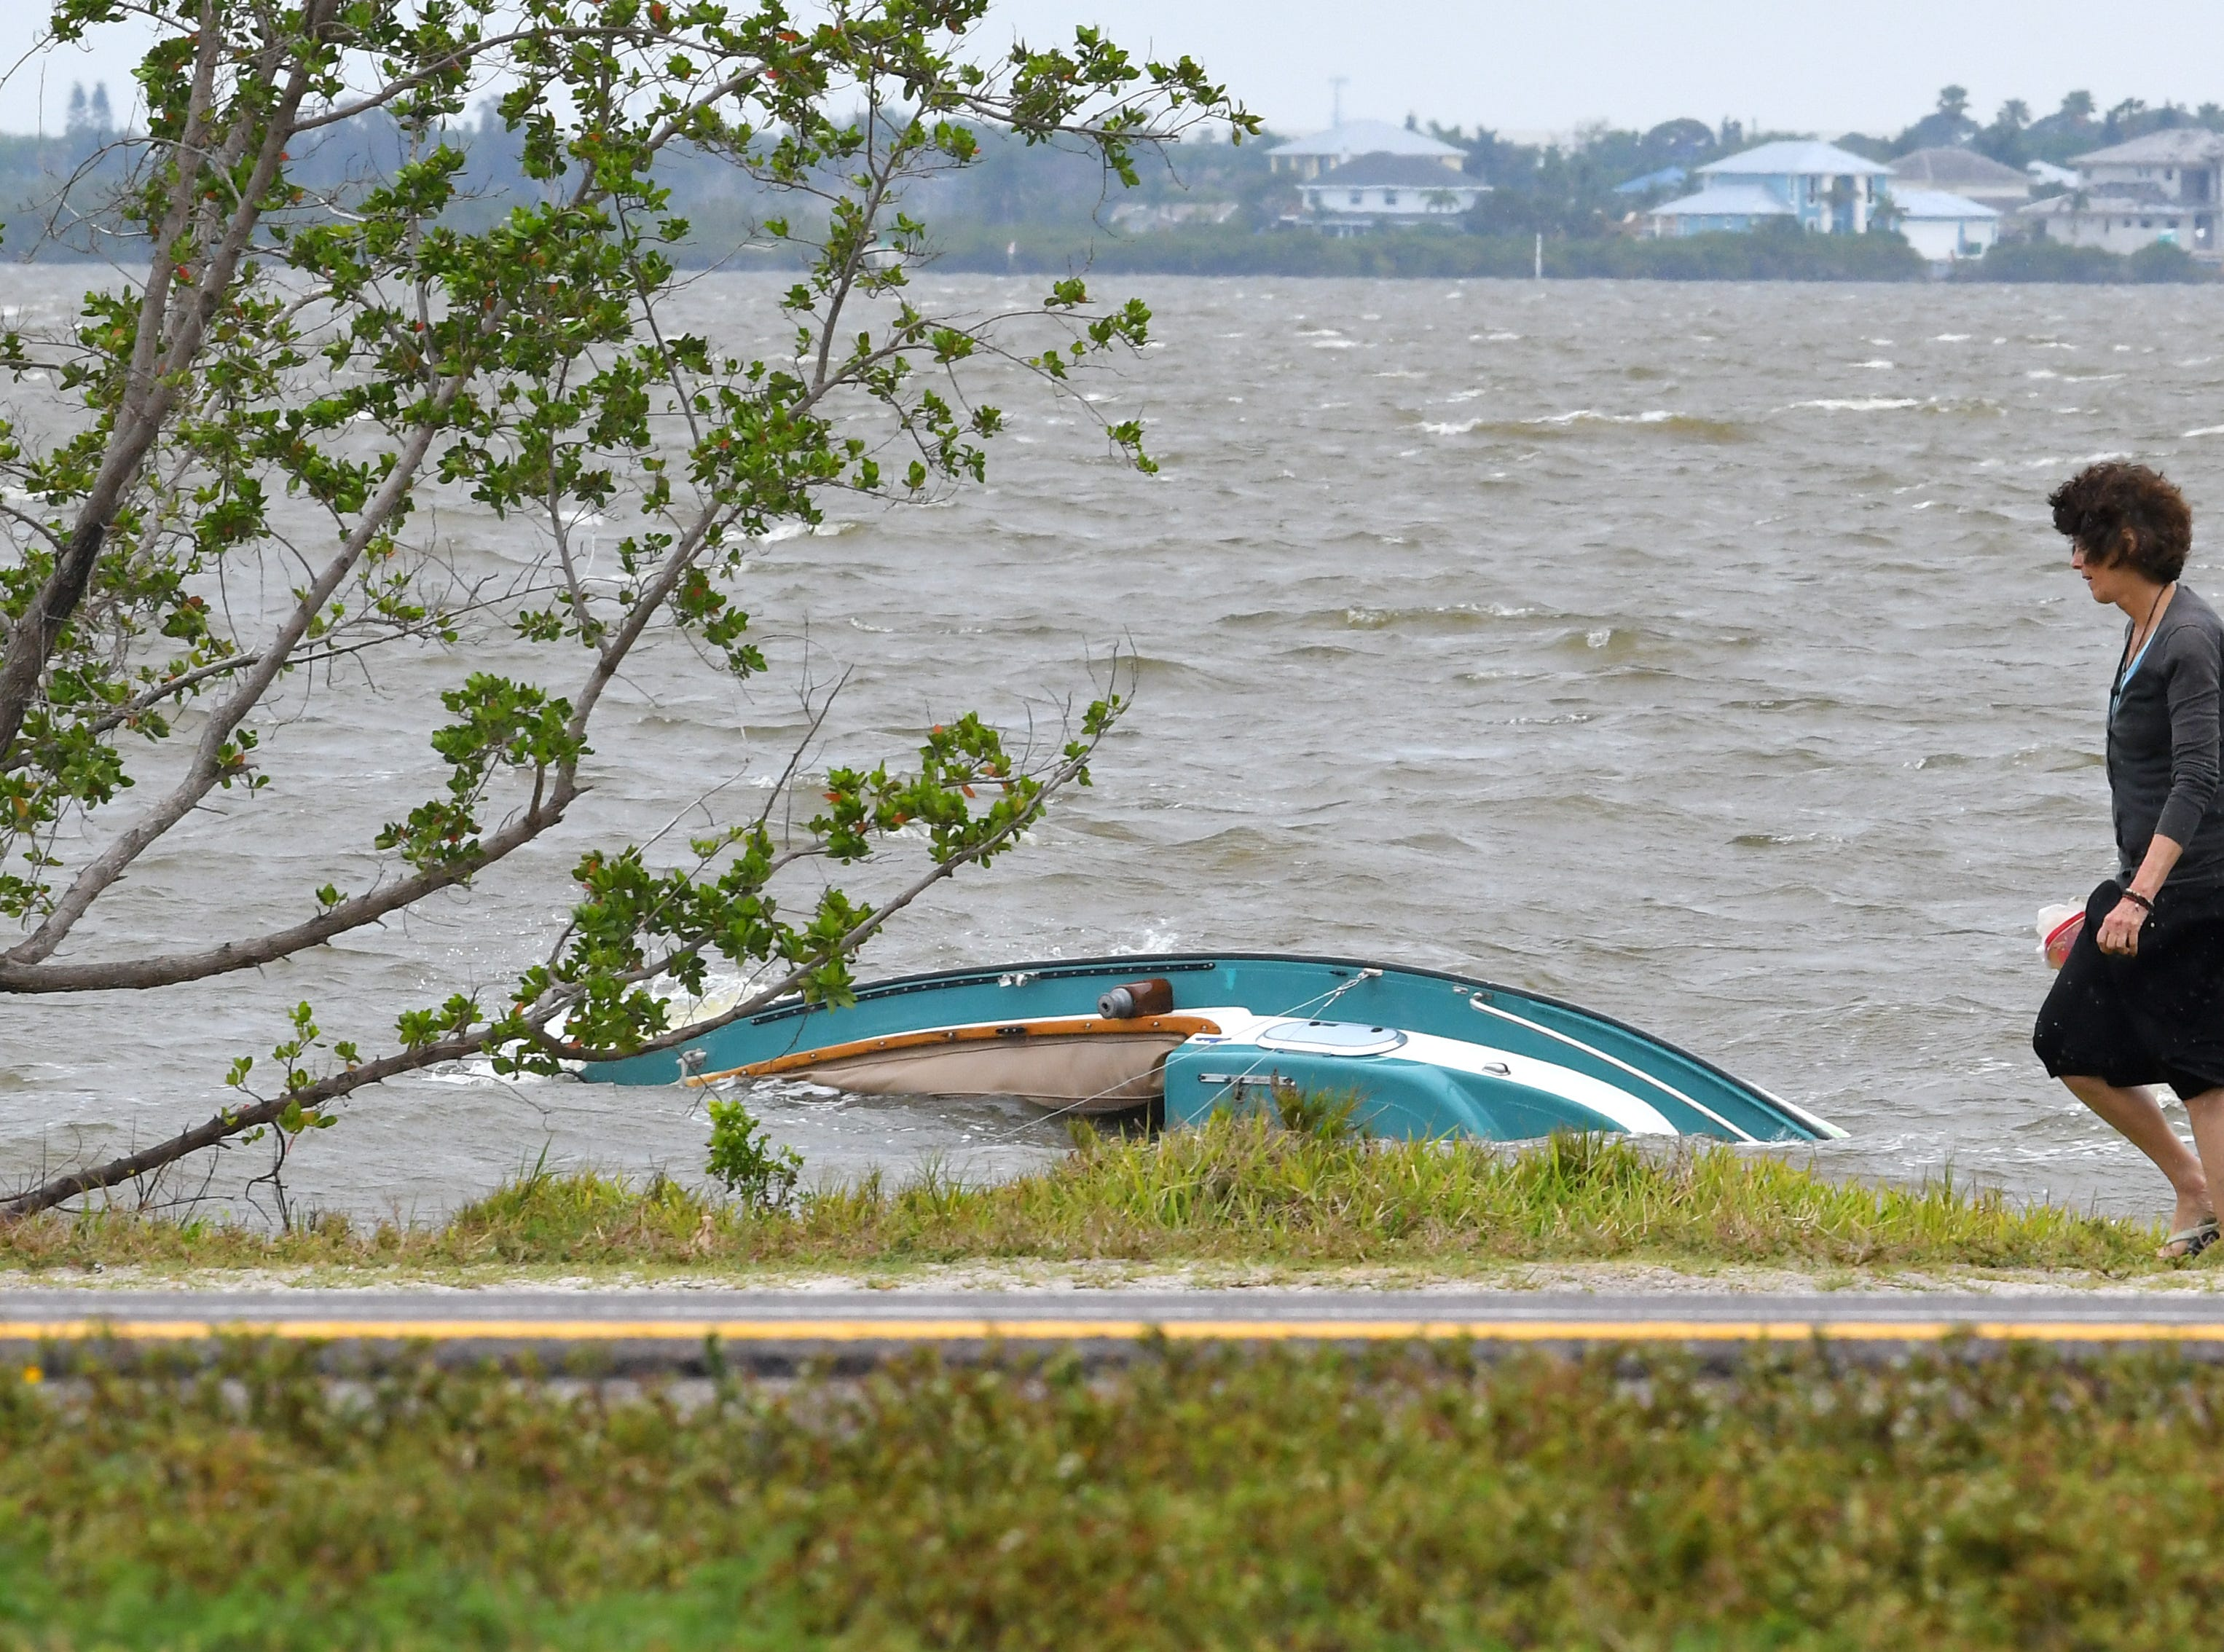 The capsized craft drifted closer to shore near State Road 528.